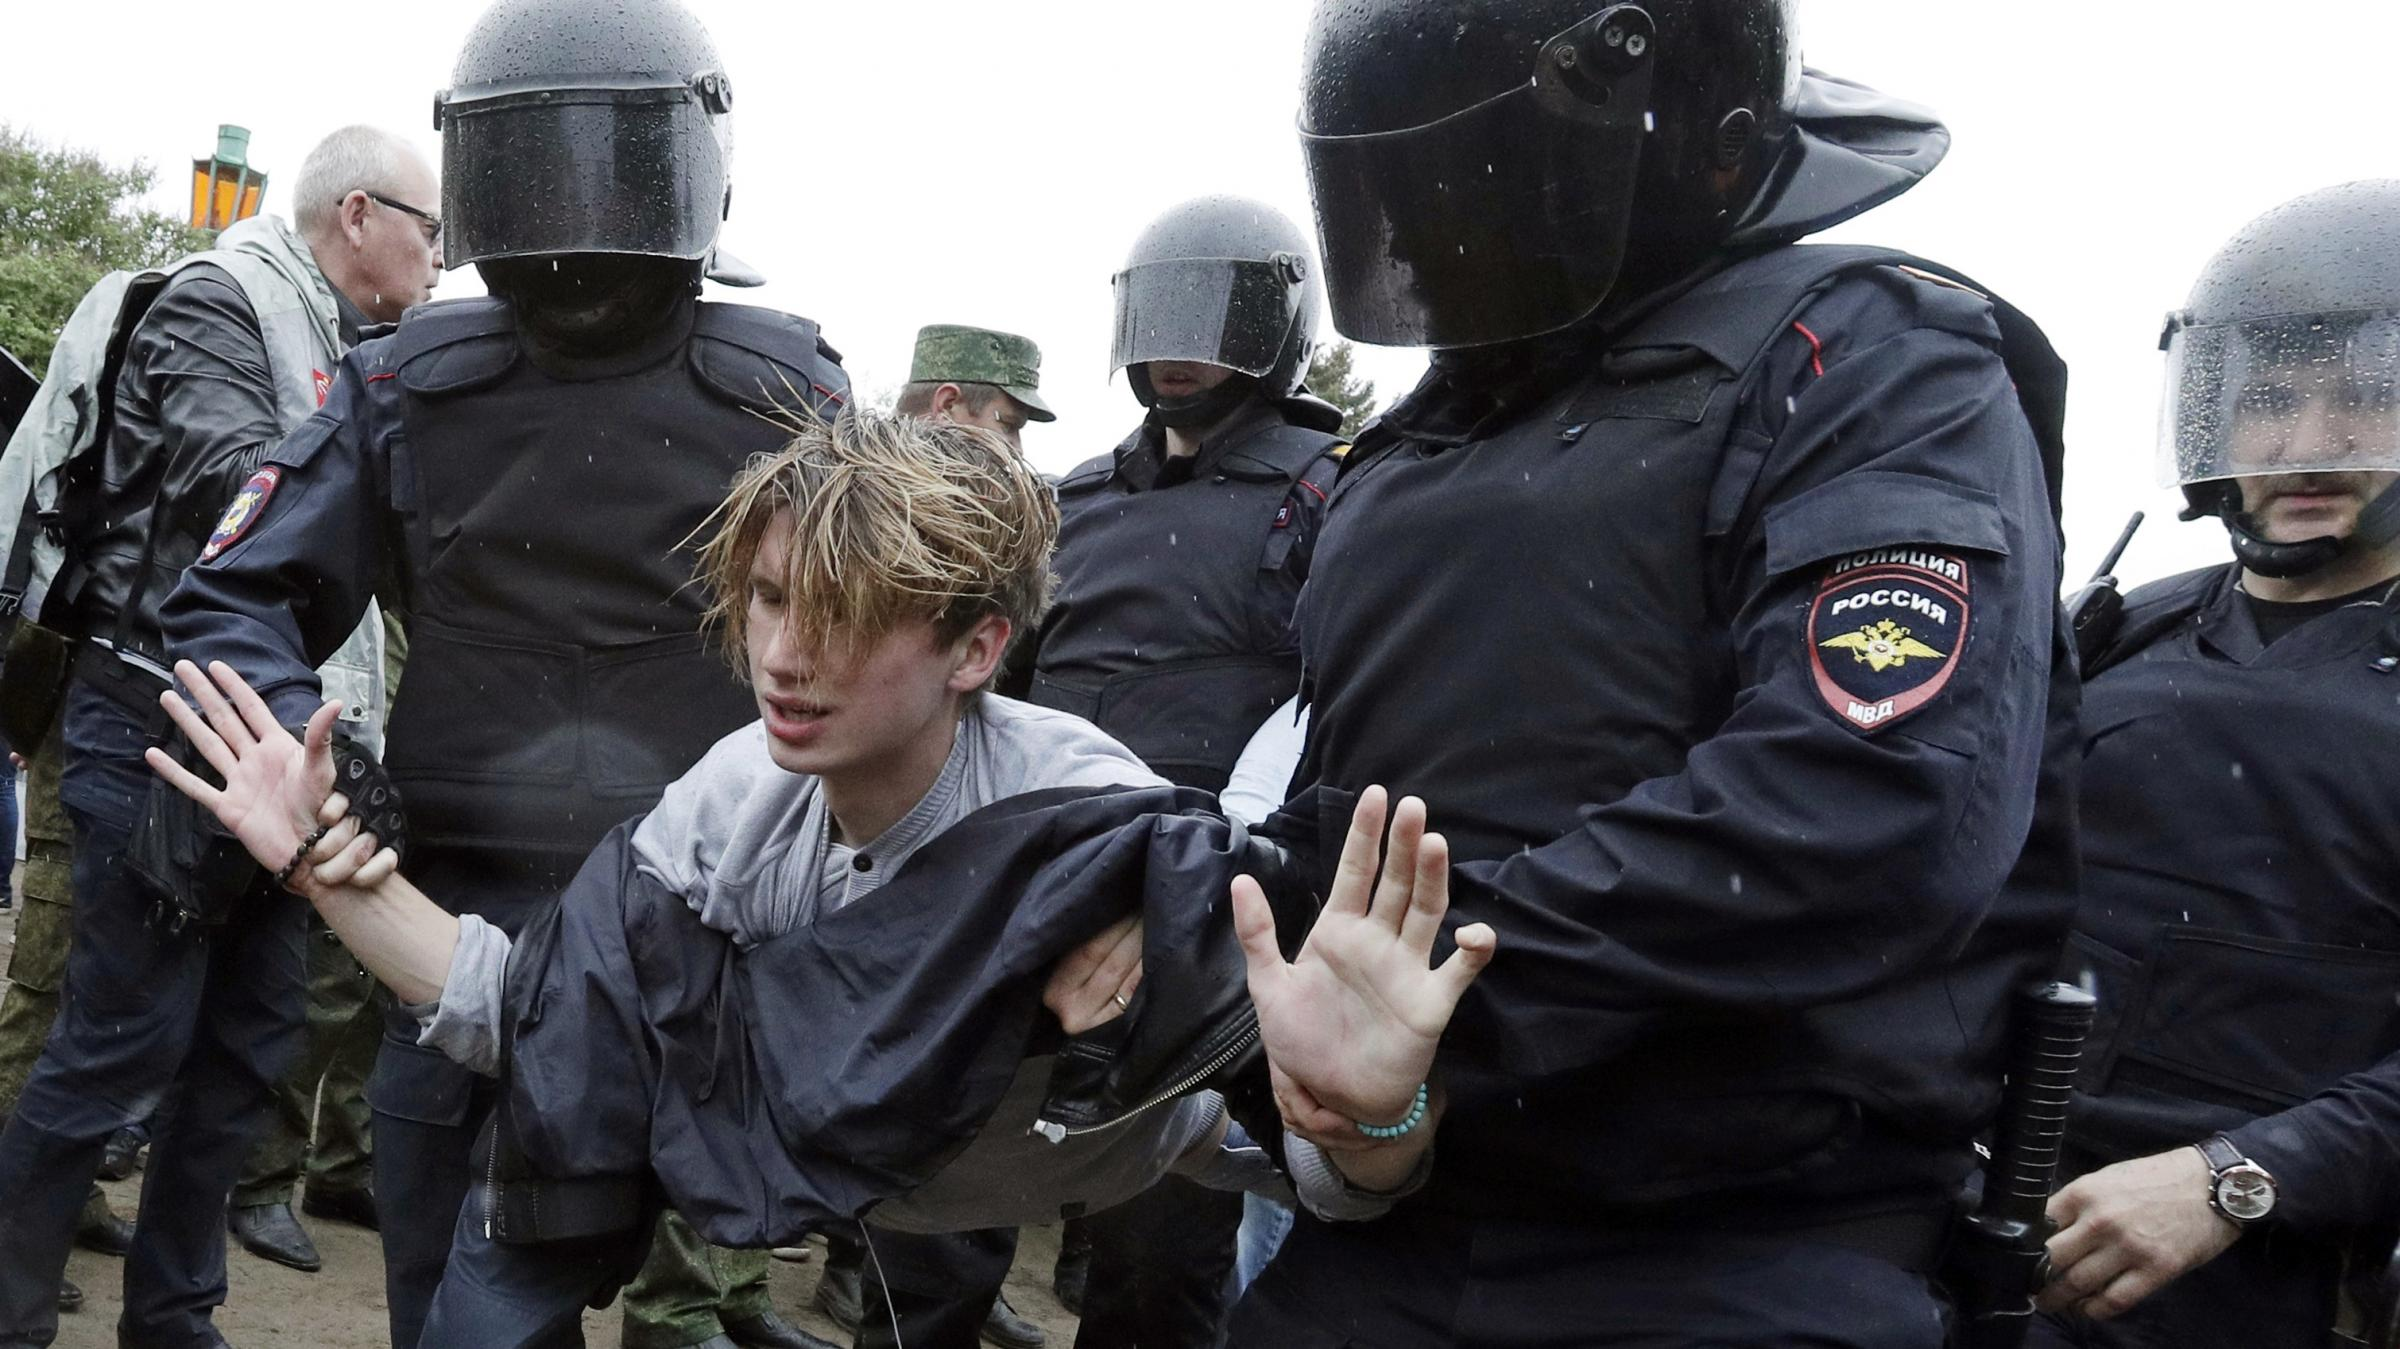 Protests across Russian Federation after Vladimir Putin critic detained